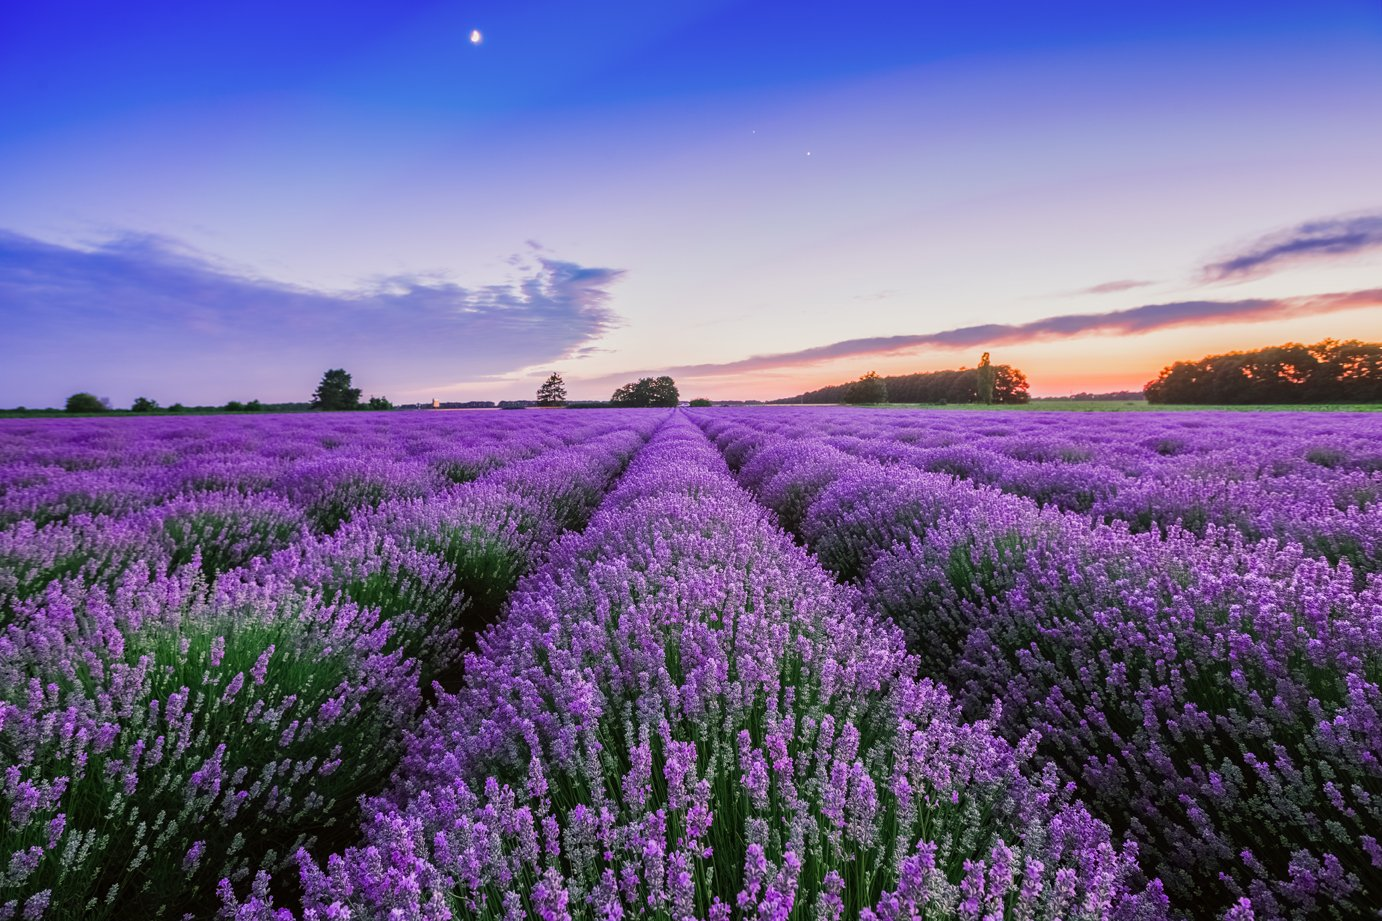 Why do we like Lavender?